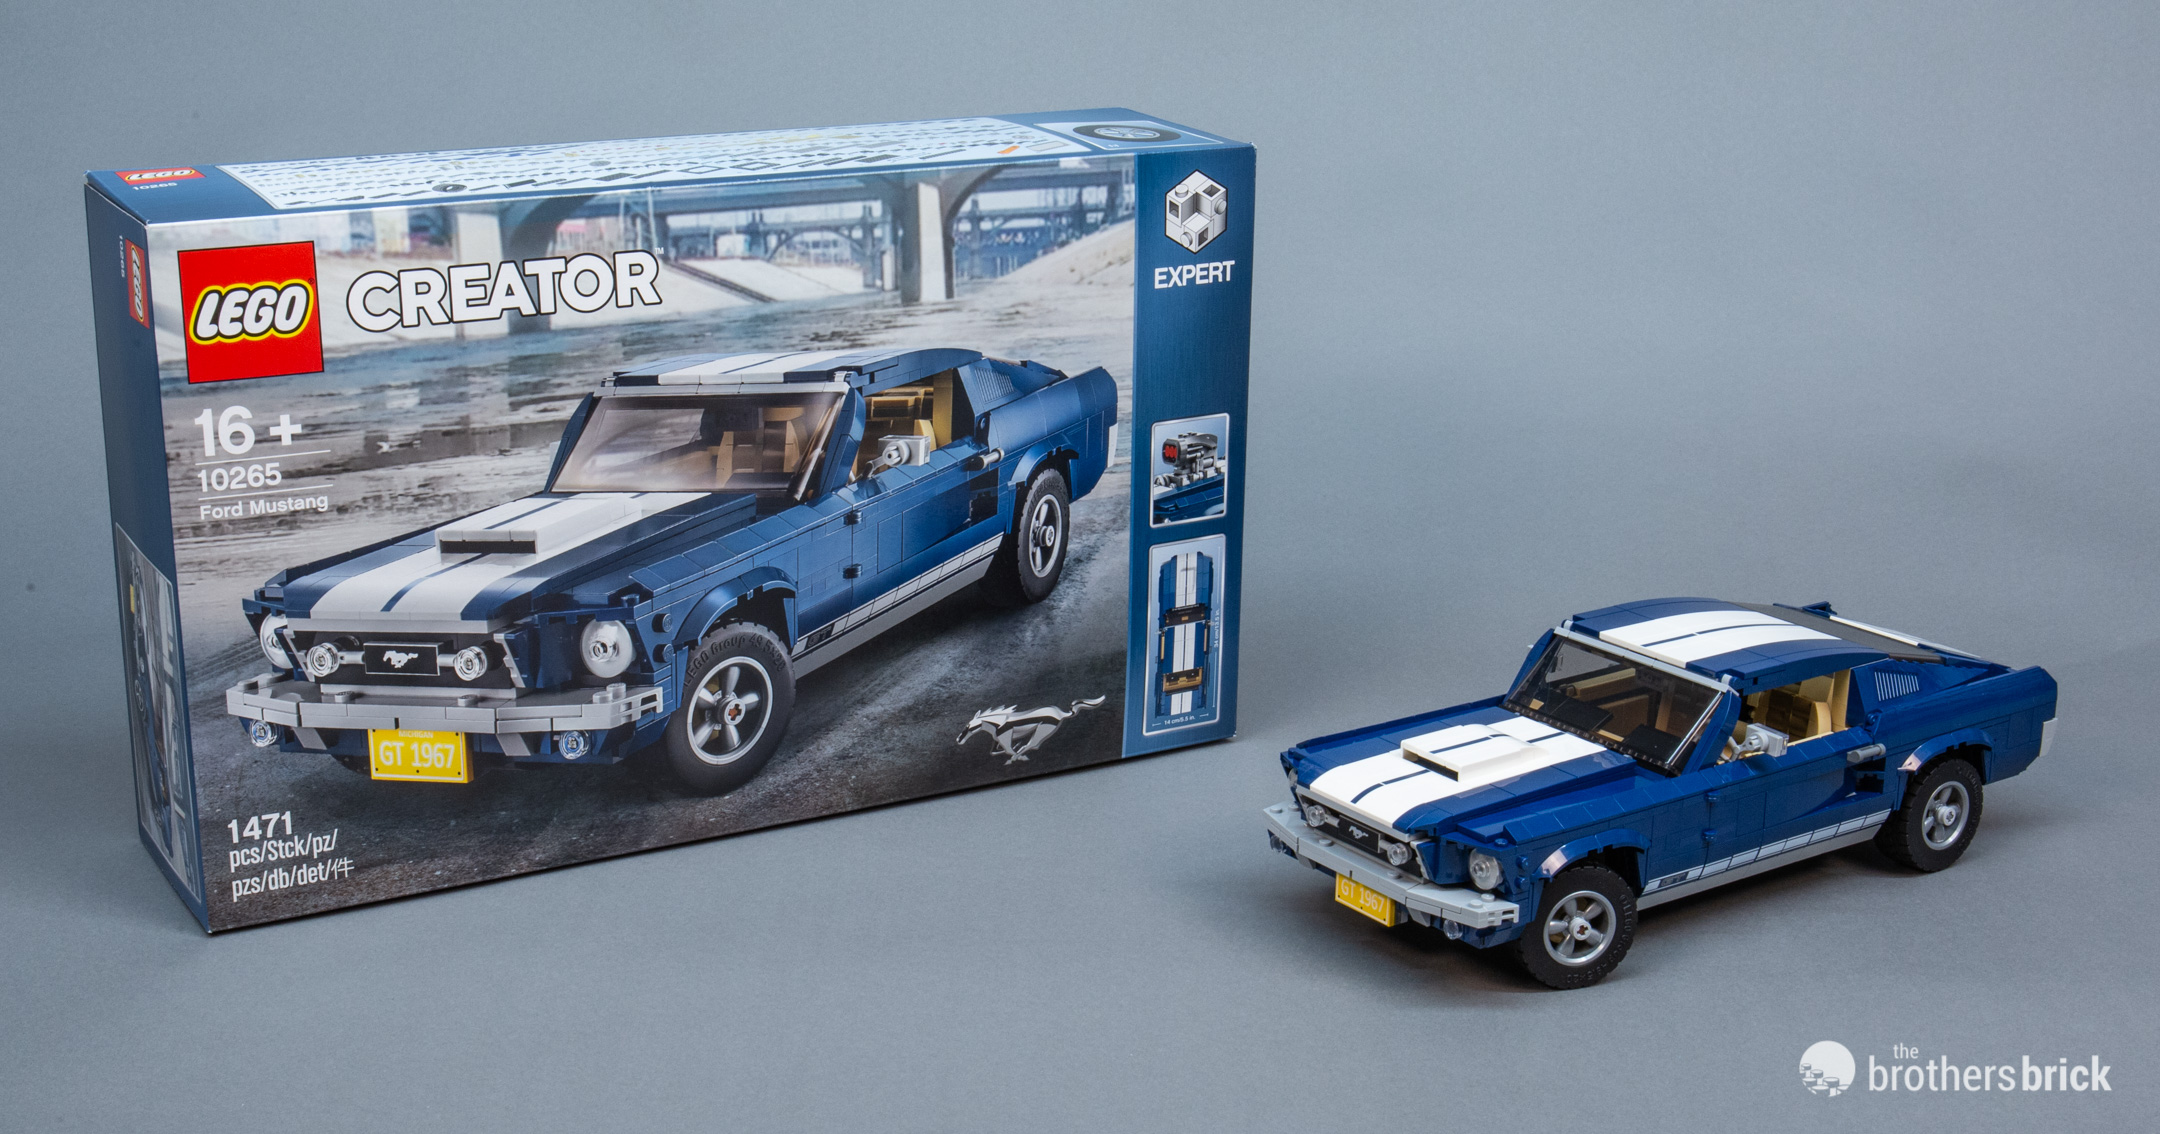 10265 LEGO Creator Expert Ford Mustang Review 3 The